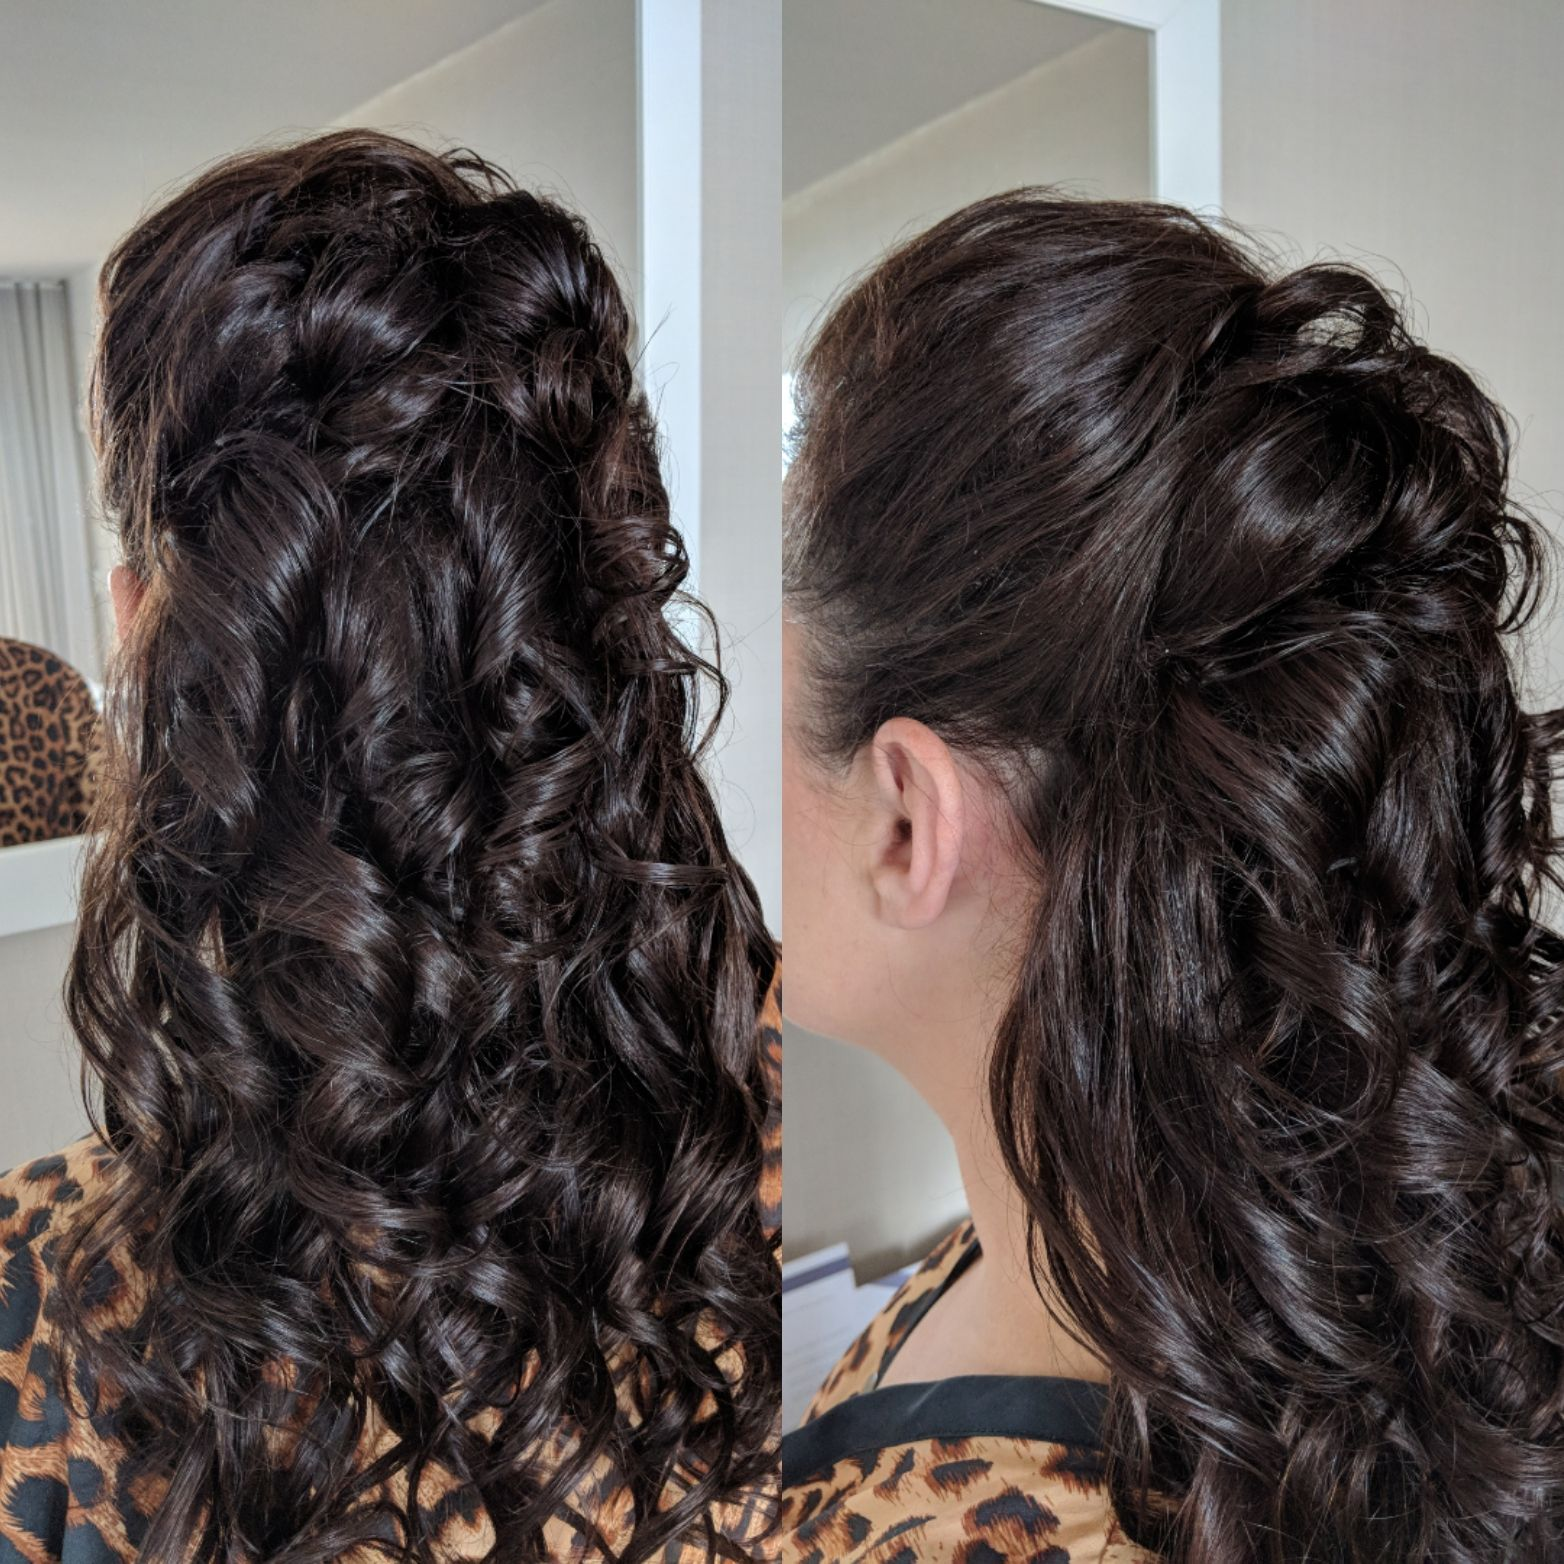 pin on bridal hairstyles for long hair - wedding hair and